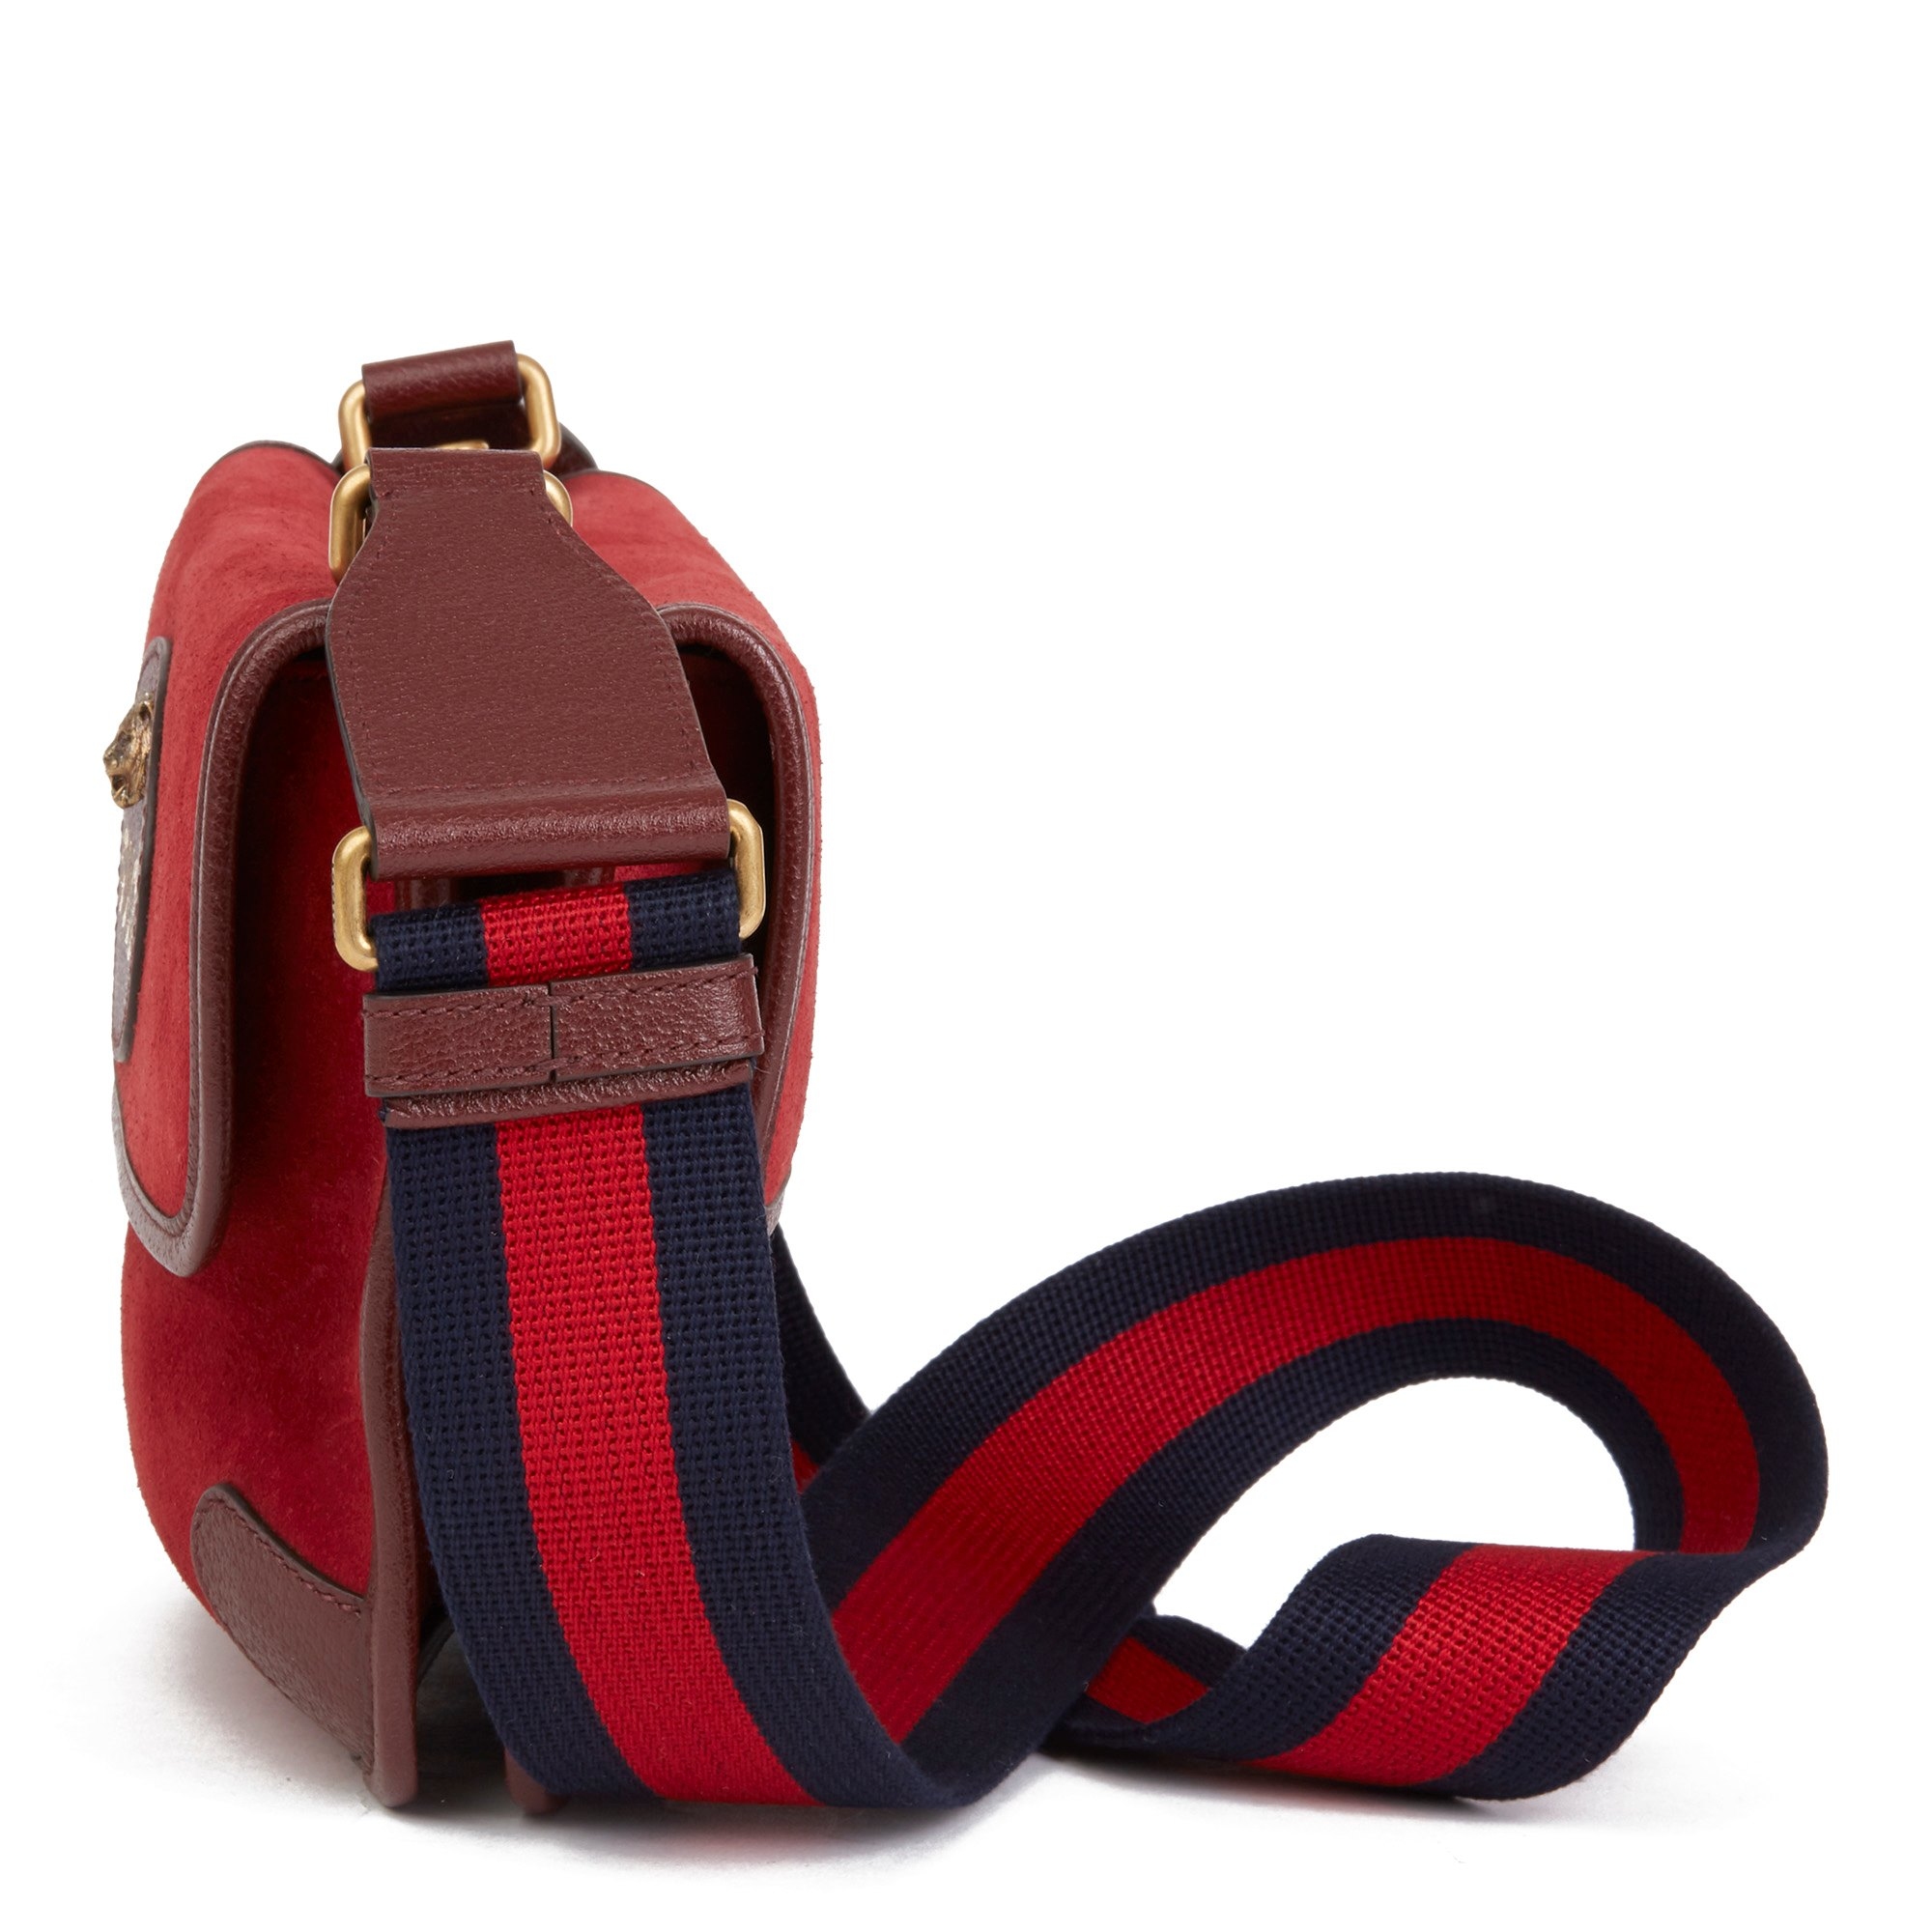 Gucci Red Suede & Burgundy Pigskin, Navy Web Small Messenger Bag